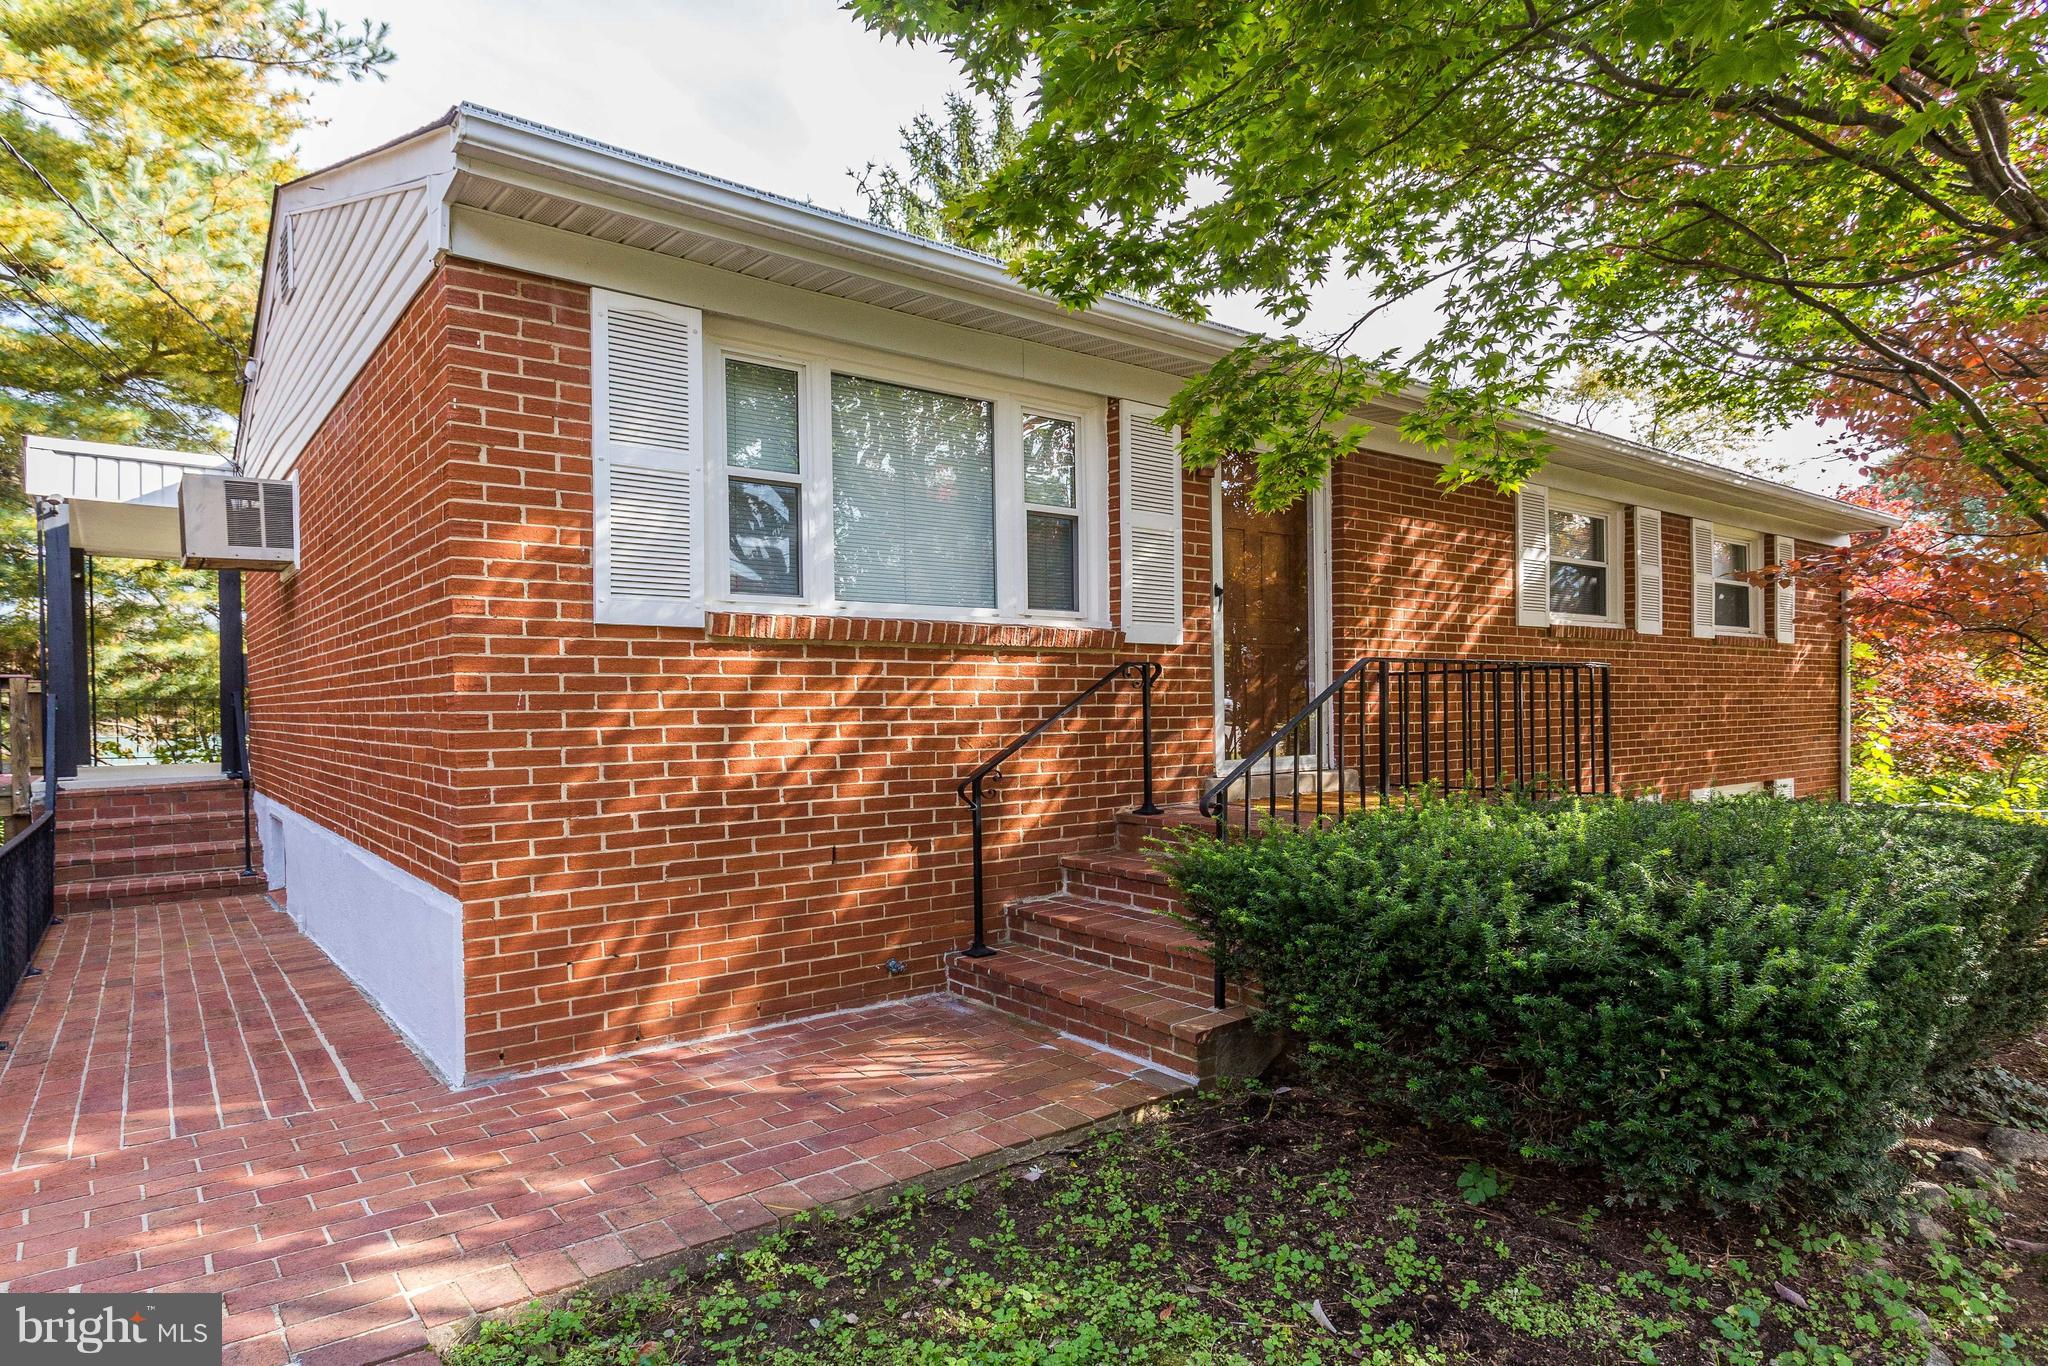 Handicap accessible w/ custom built ramp! 4BR/1.5BA brick ranch on a corner lot w/ easy access to 95! New roof! New windows! Hardwood floors throughout! 3BR/1BA on main! 1BR/.5BA in walkout basement w/ gas fireplace! Fenced yard w/ shed! More photos in tour! Call today for your private showing!